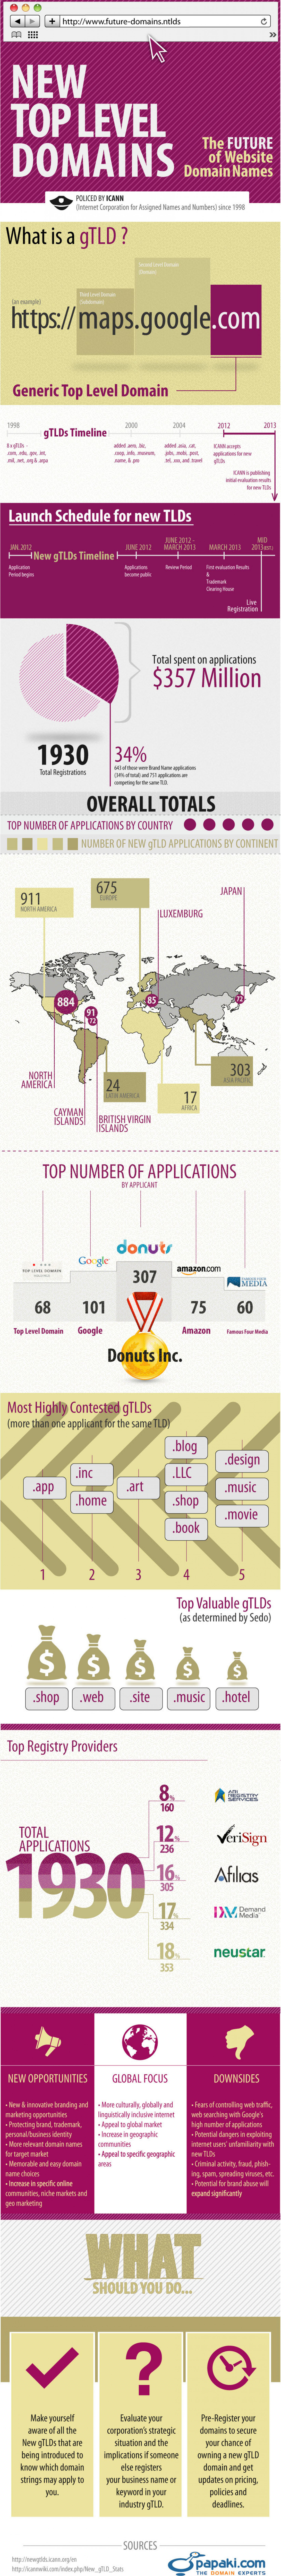 New TLDs: The Future of Domain Names Infographic